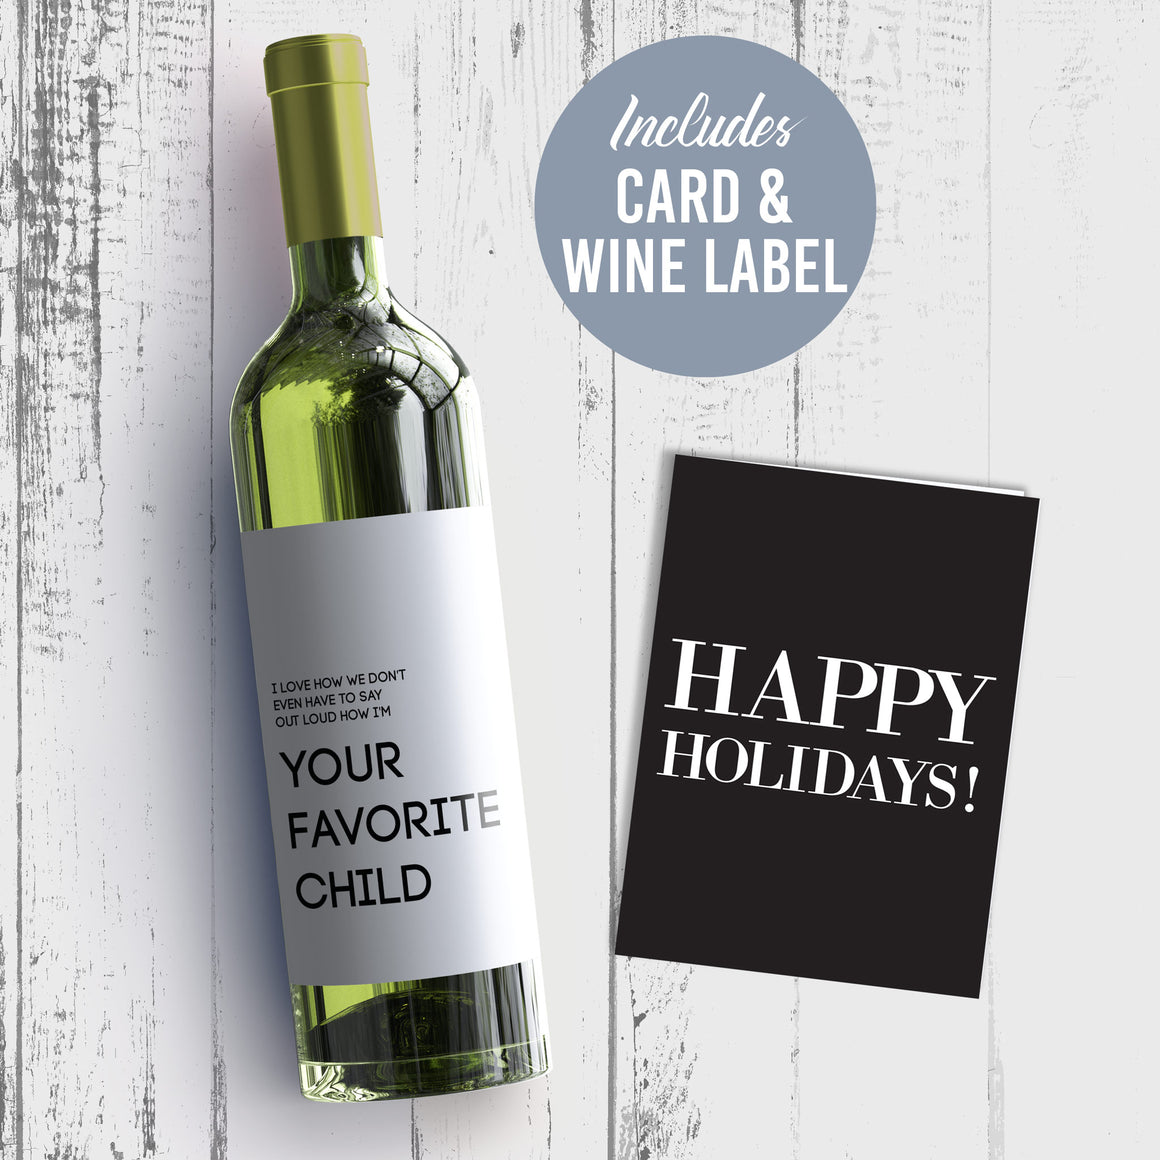 I Love How We Don't Have To Say Out Loud How I'm Your Favorite Child Wine Label